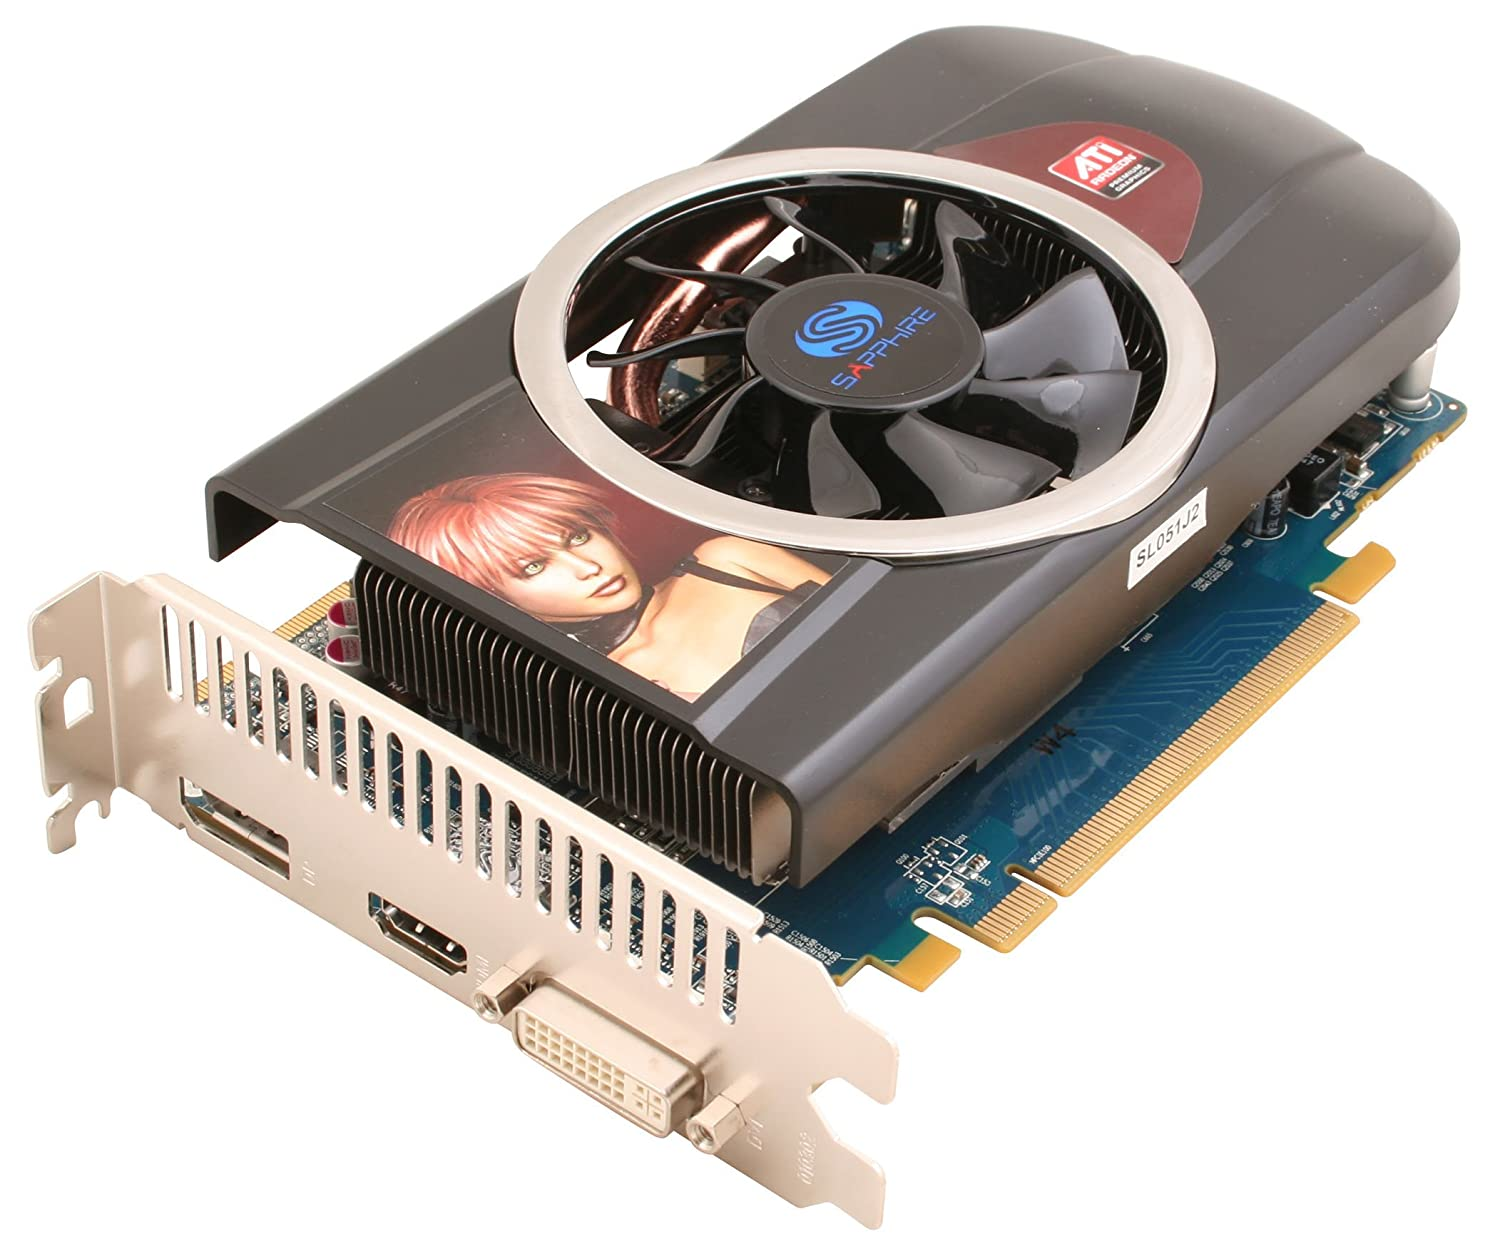 Hd Radeon 4200 Driver Download